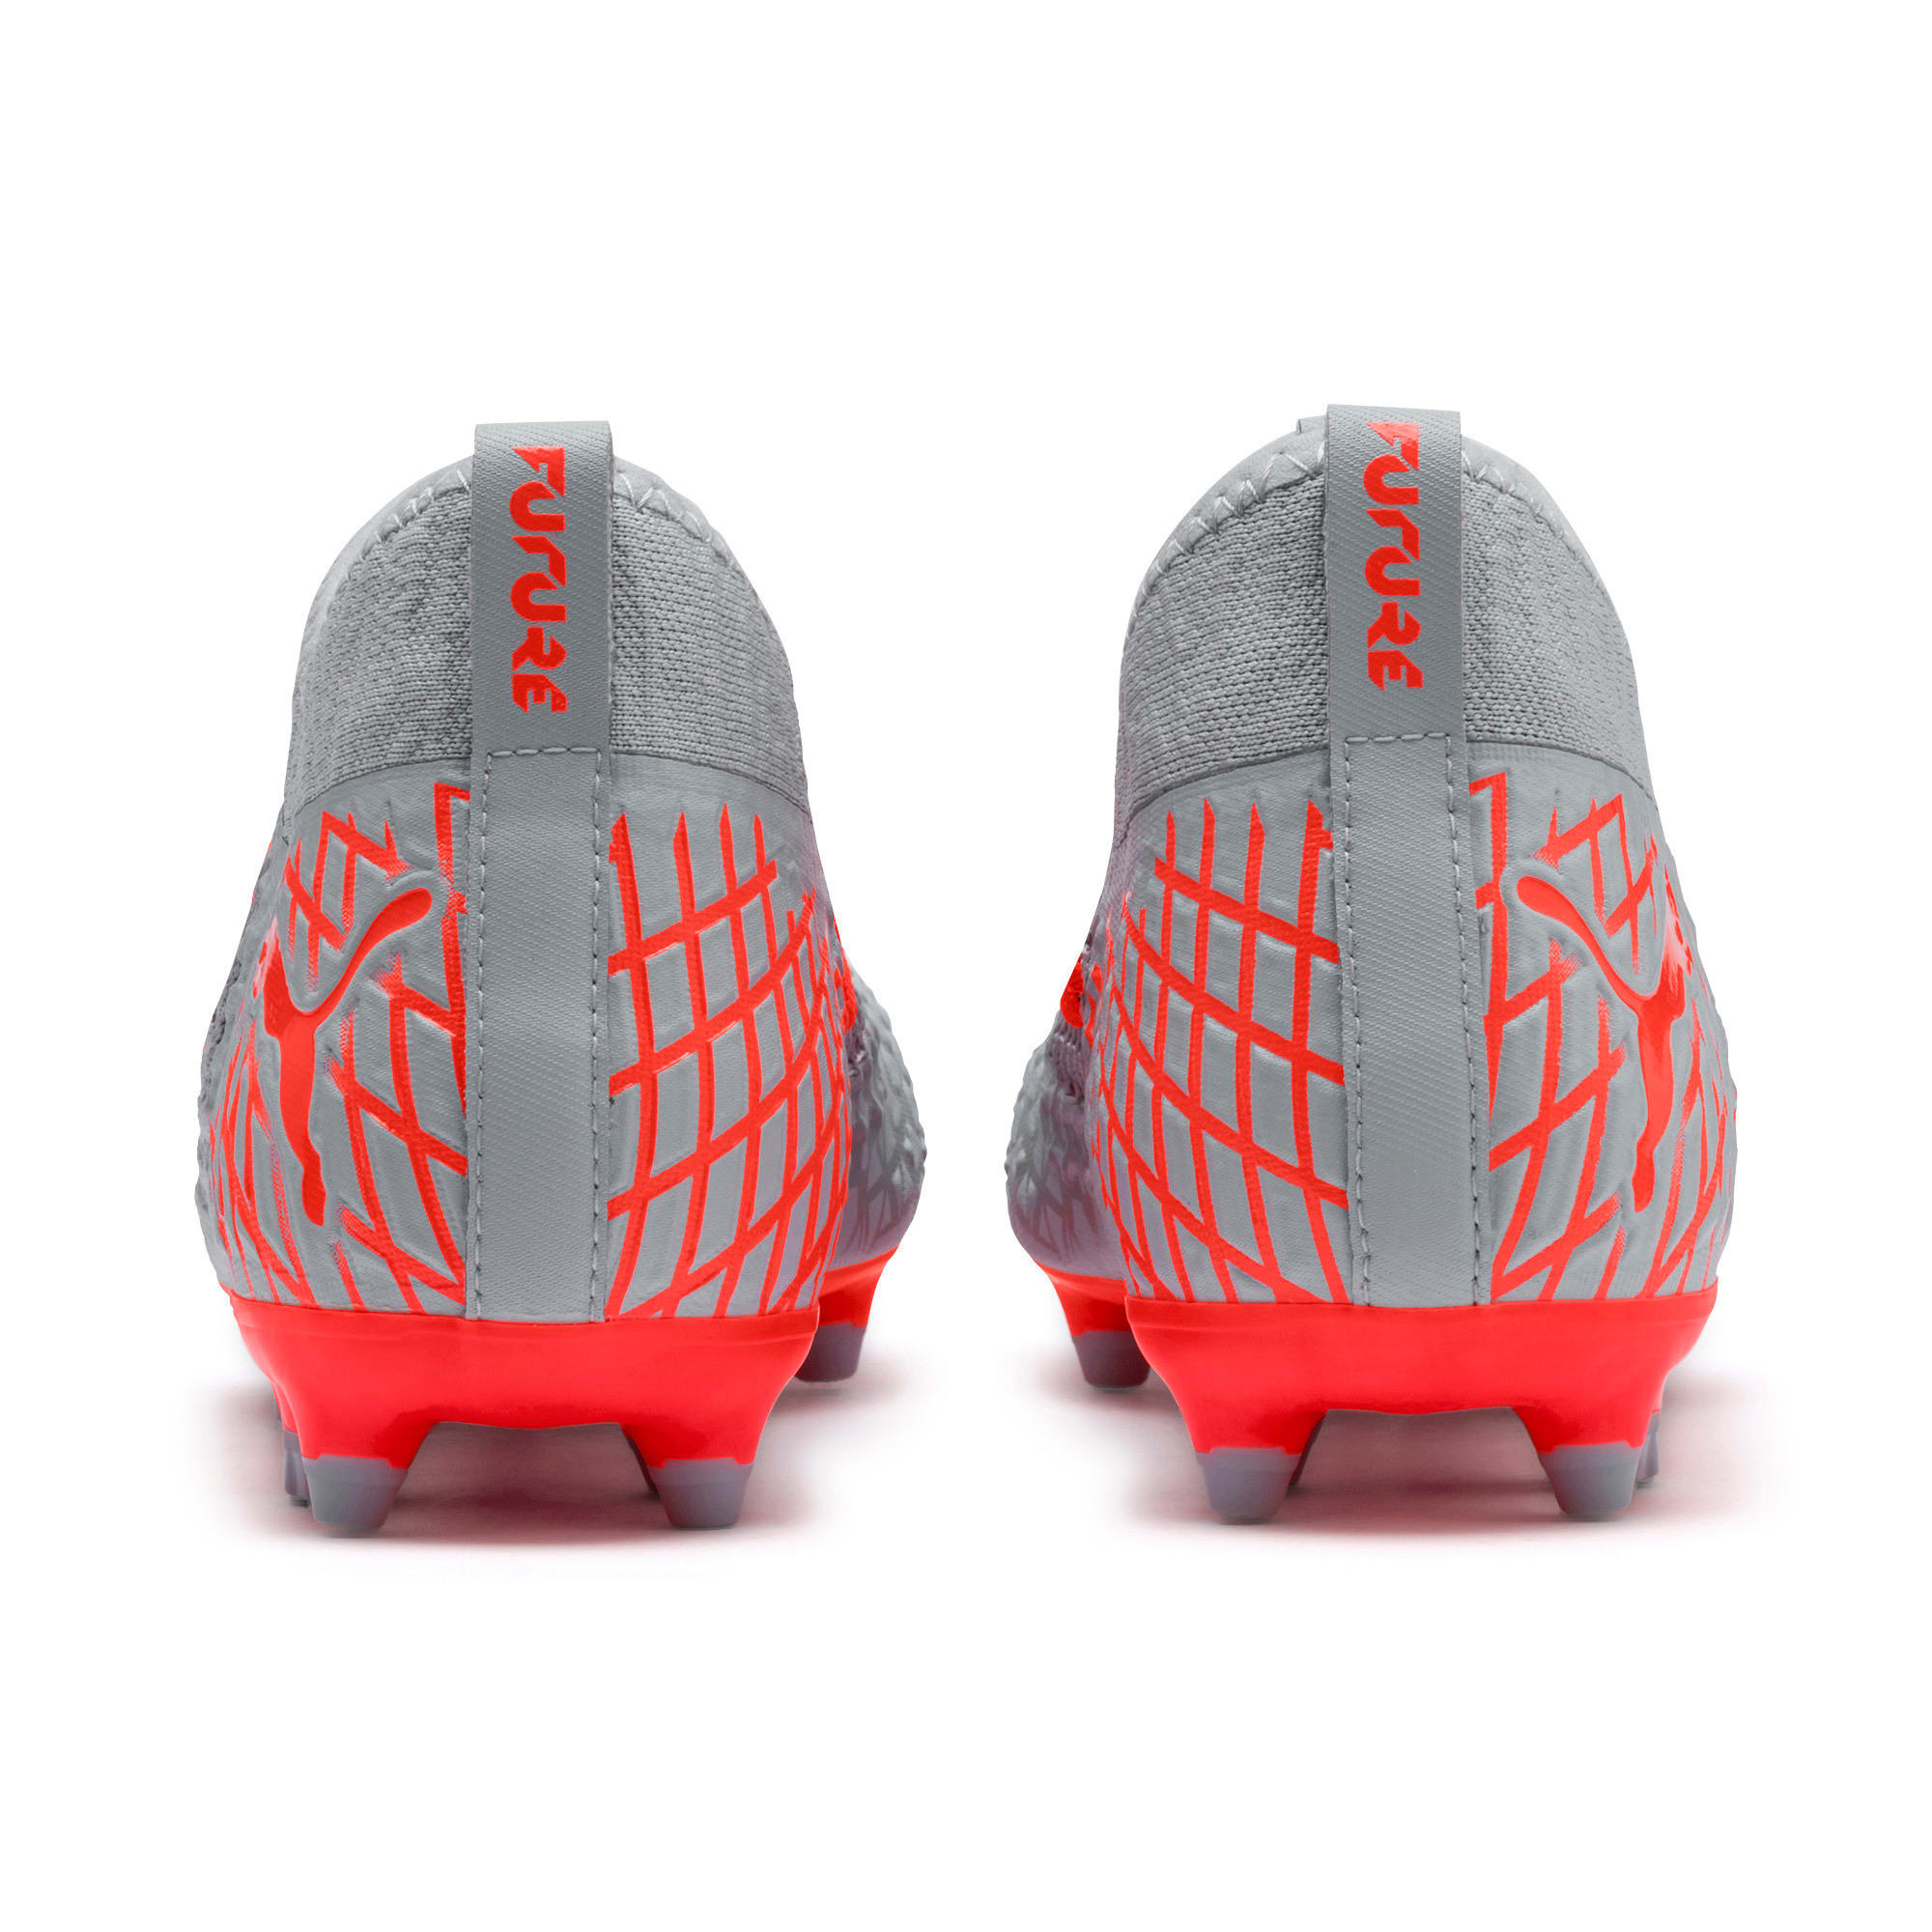 Thumbnail 4 of FUTURE 4.3 NETFIT FG/AG Men's Soccer Cleats, Glacial Blue-Nrgy Red, medium